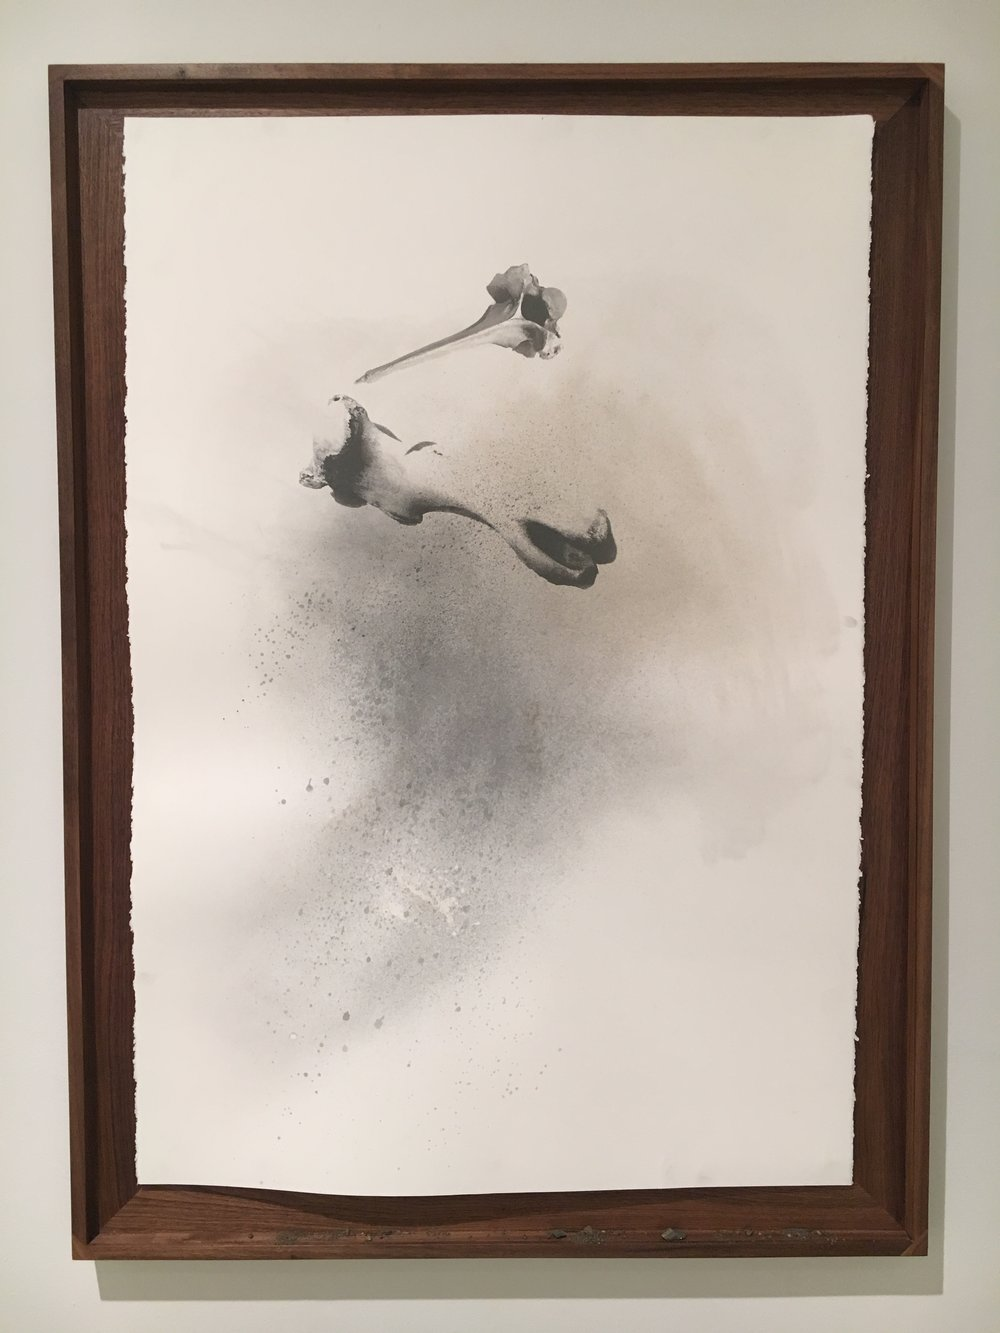 Nate Young,   Casting 5,  2017  Serigraph with earth and graphite on paper  Image courtesy of the Visual Arts Center of Richmond